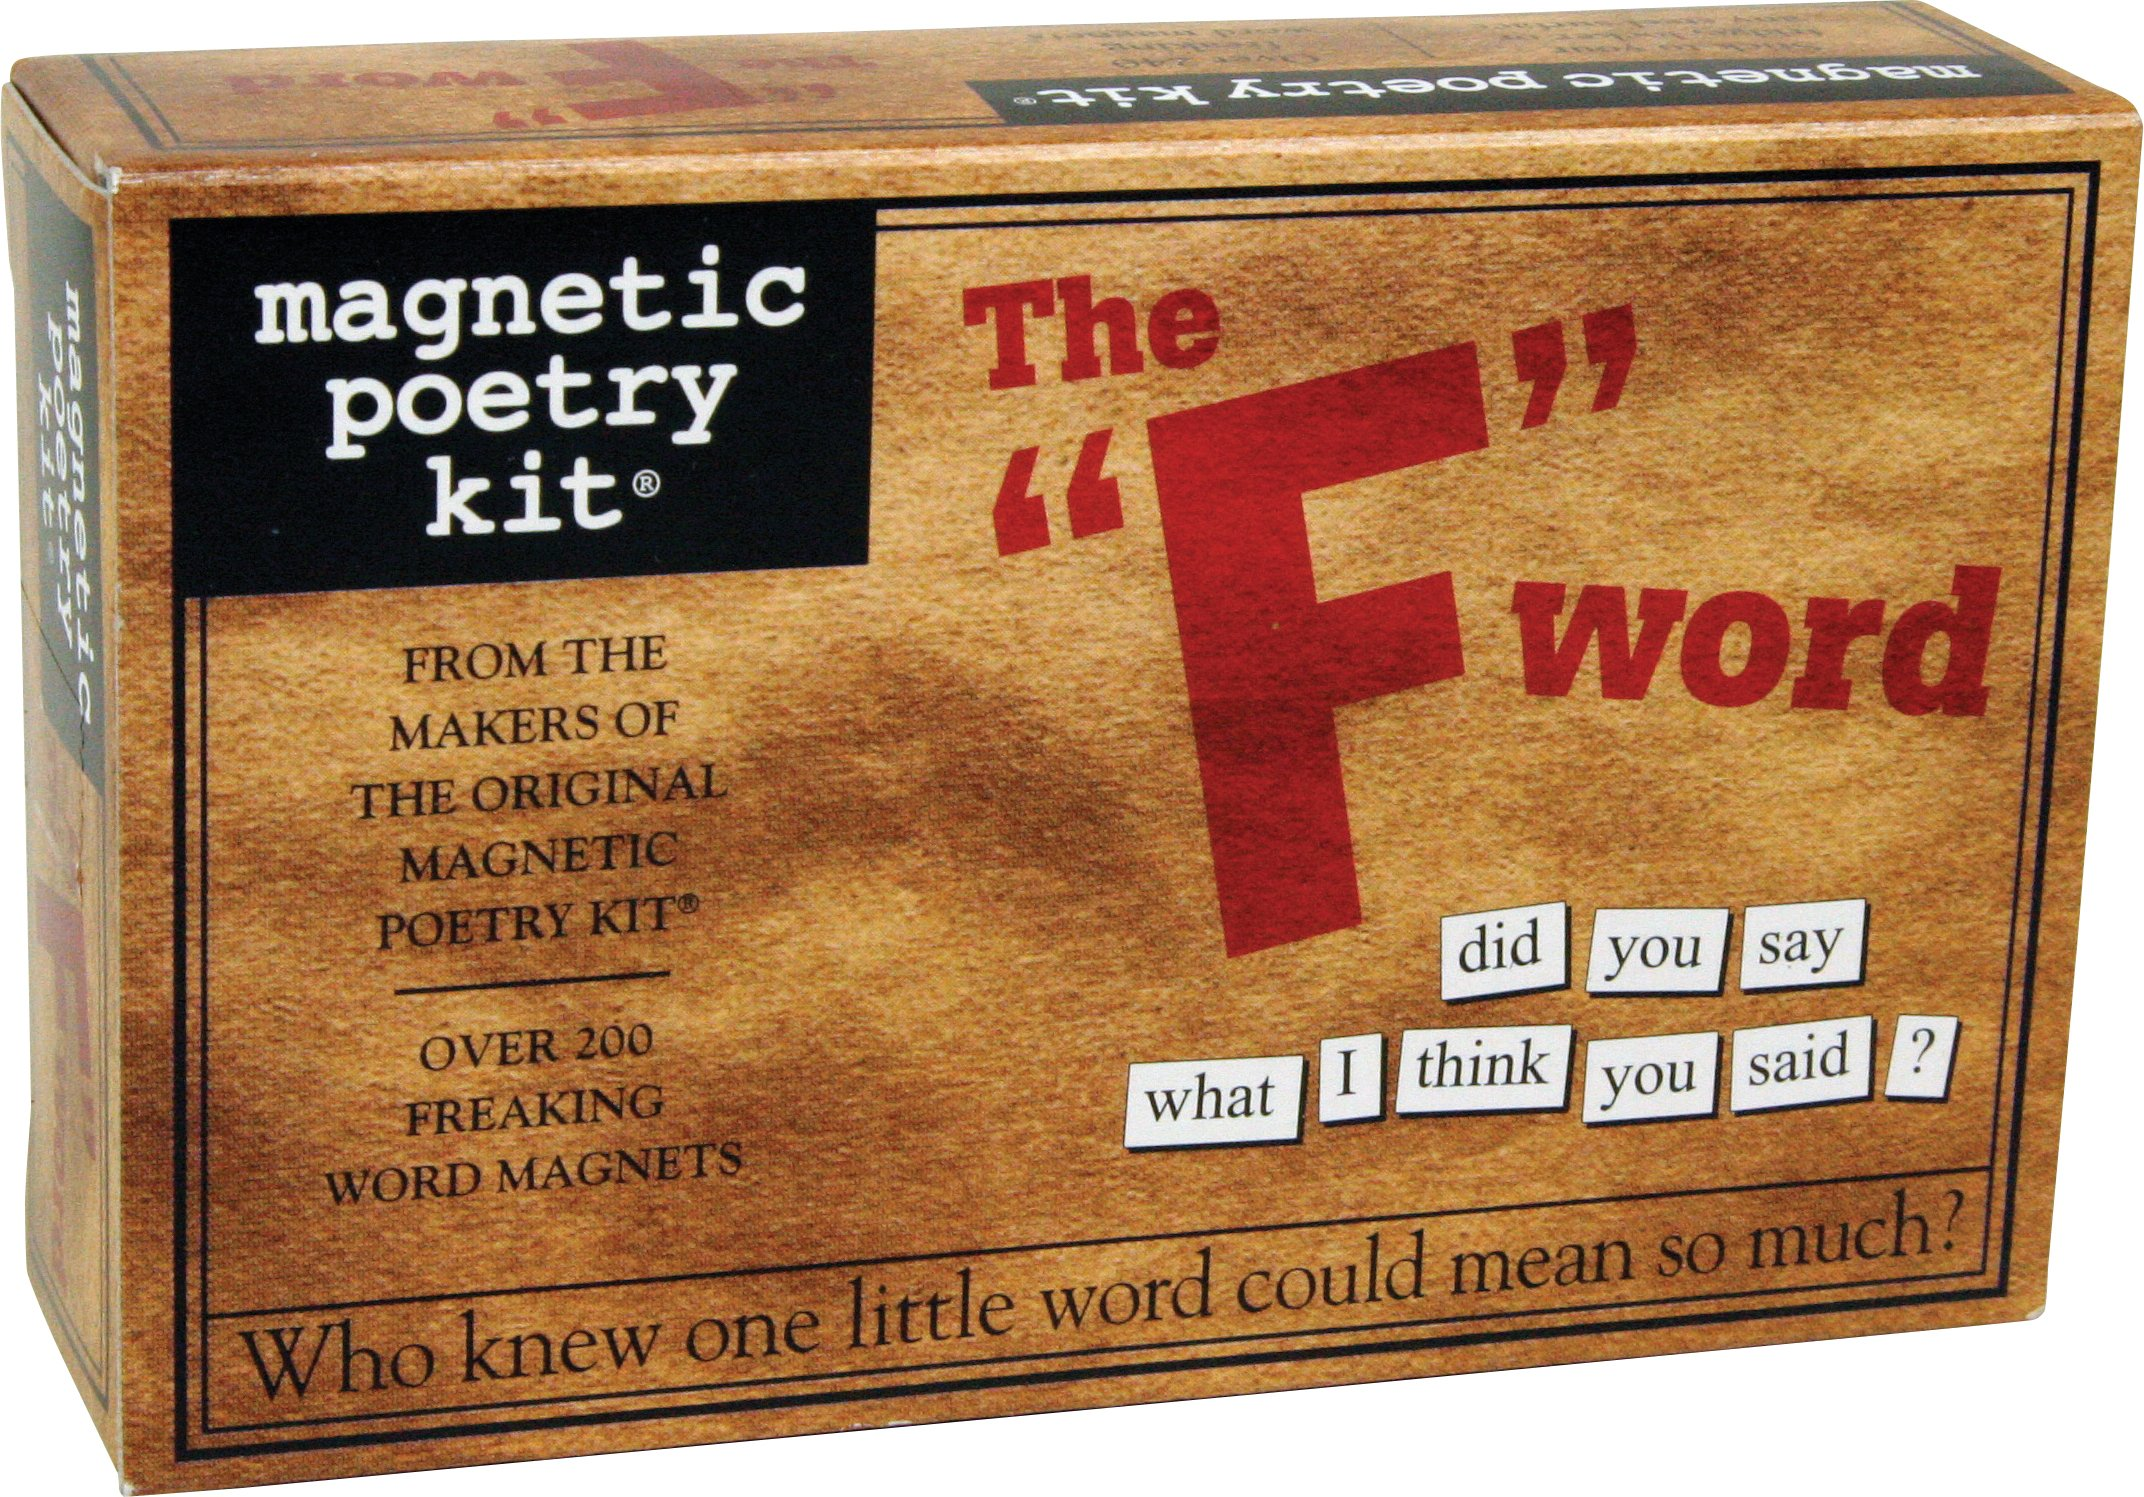 Magnetic Poetry - F Word Kit - Words for Refrigerator - Write Poems and Letters on the Fridge - Made in the USA by Magnetic Poetry